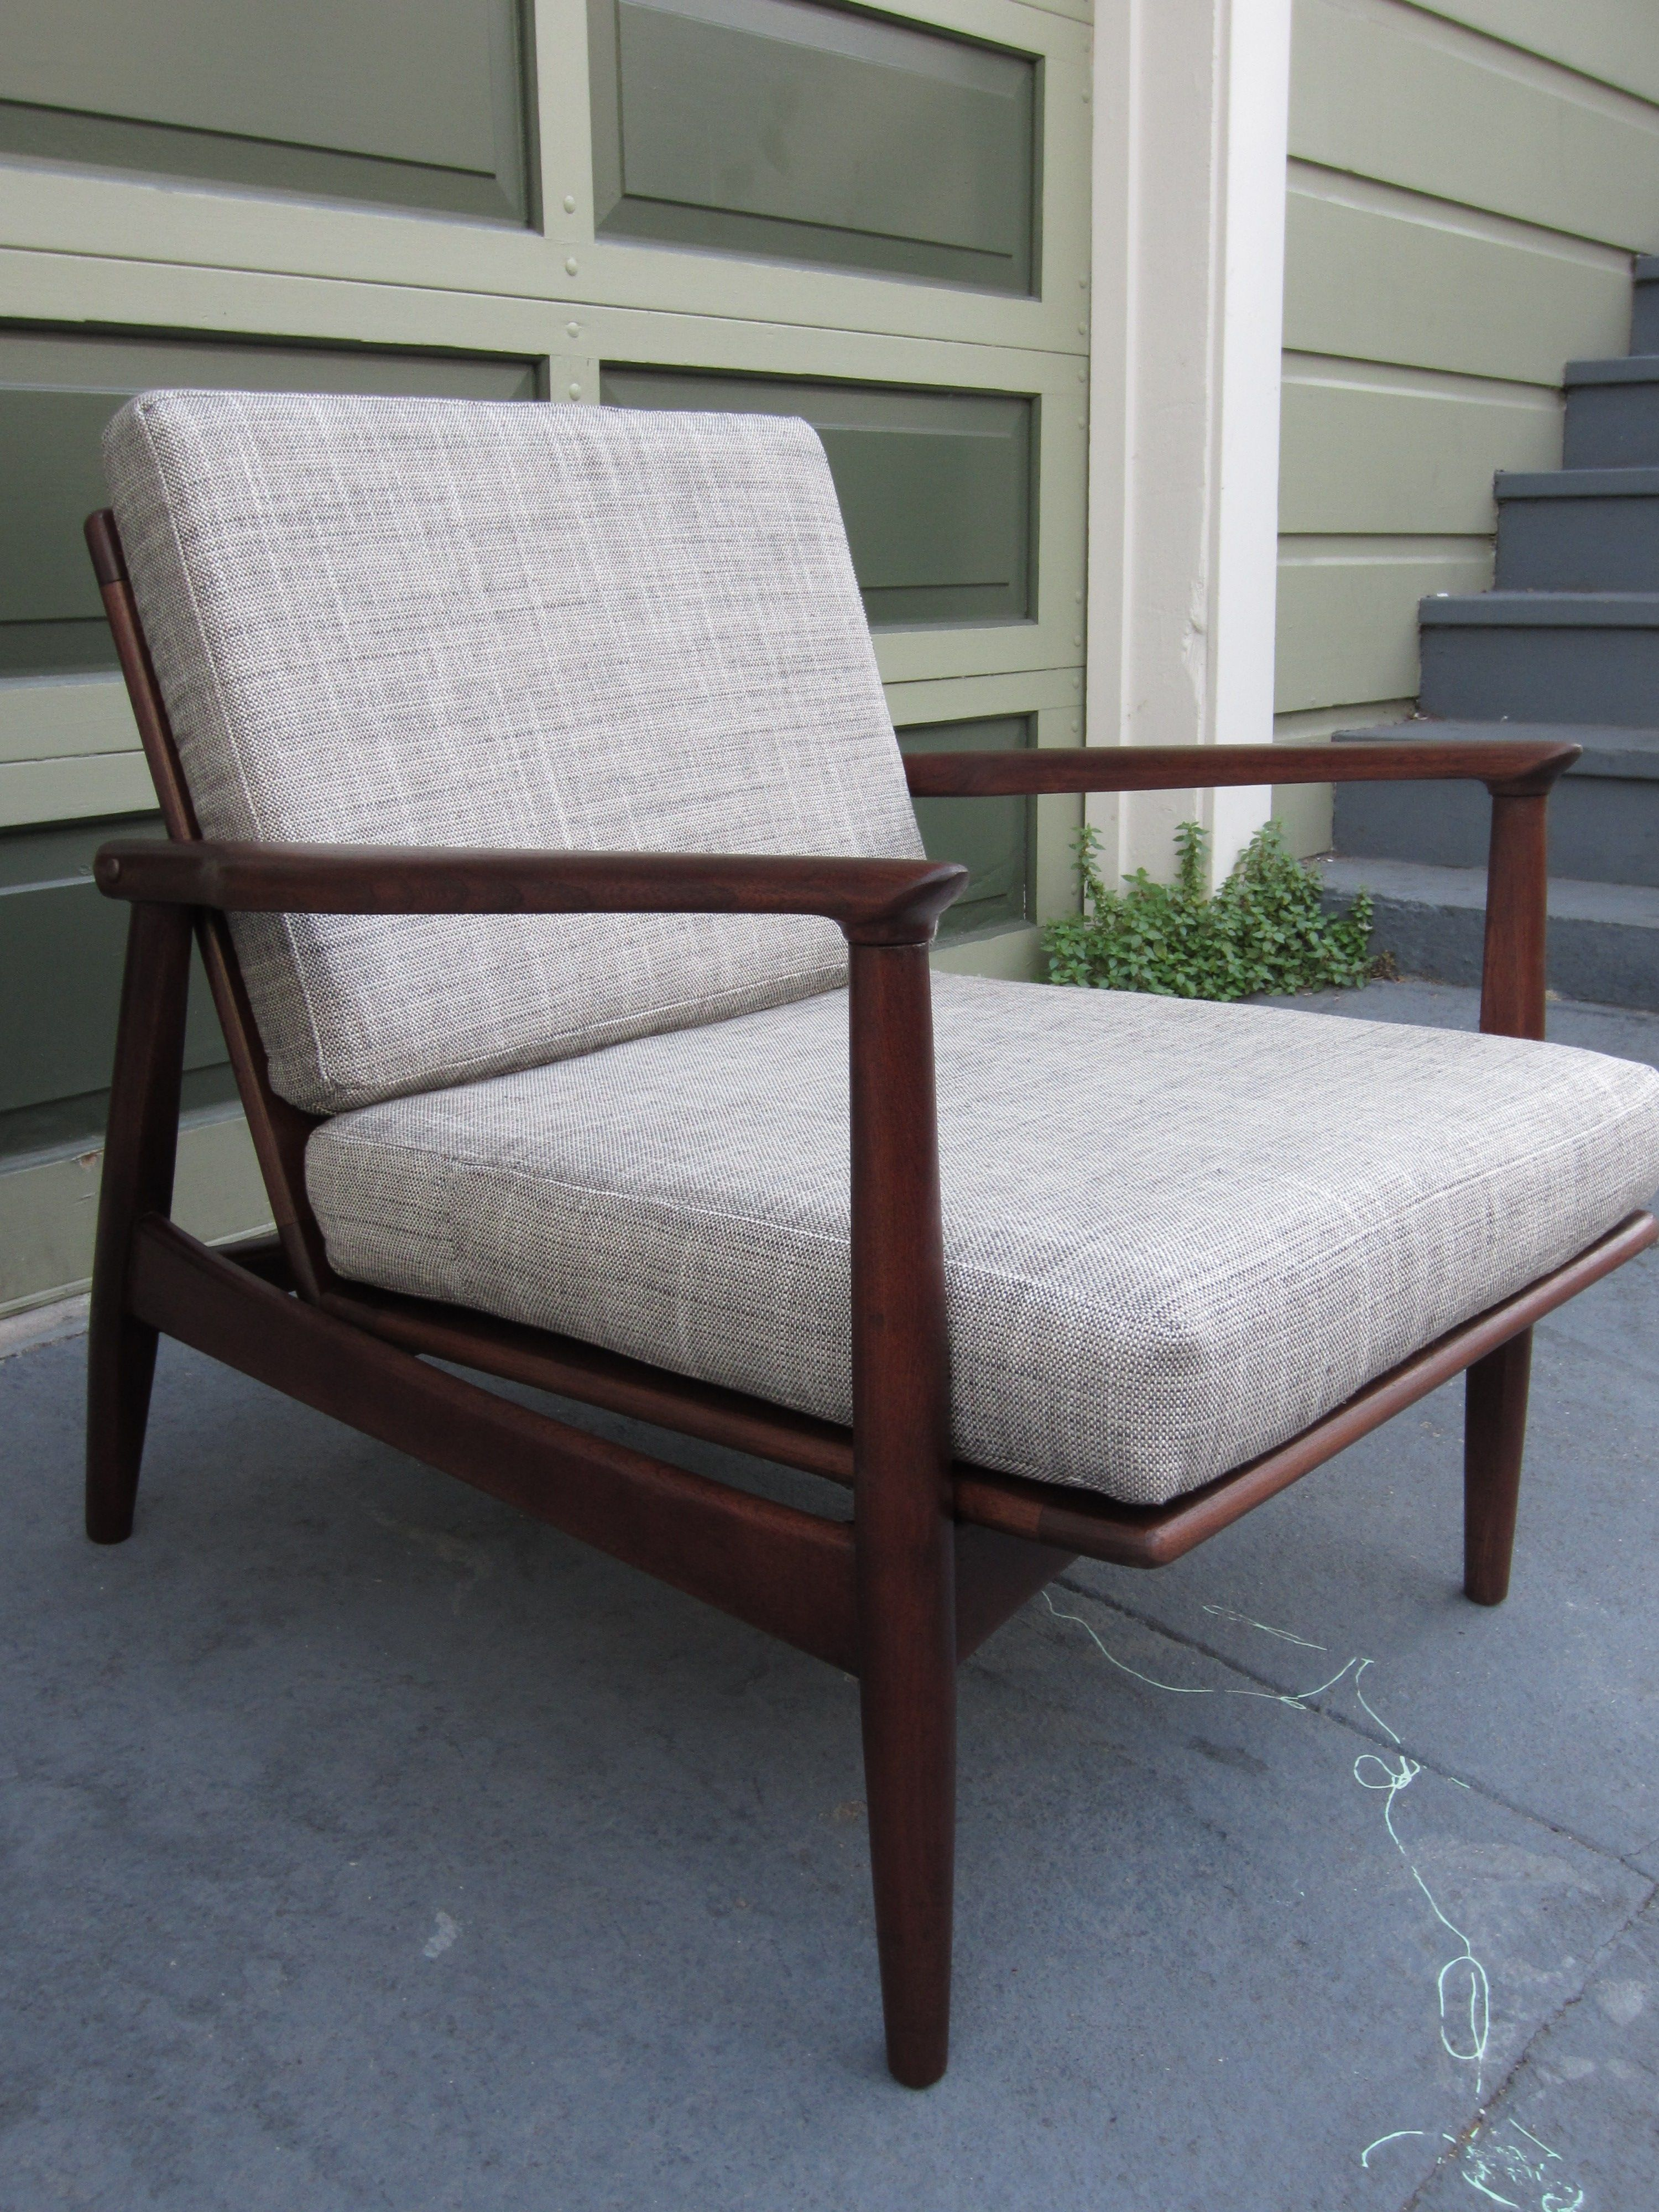 2 X Danish Chair...recovering In Cream Seat And Print Back  Cushion...9 24 12 012